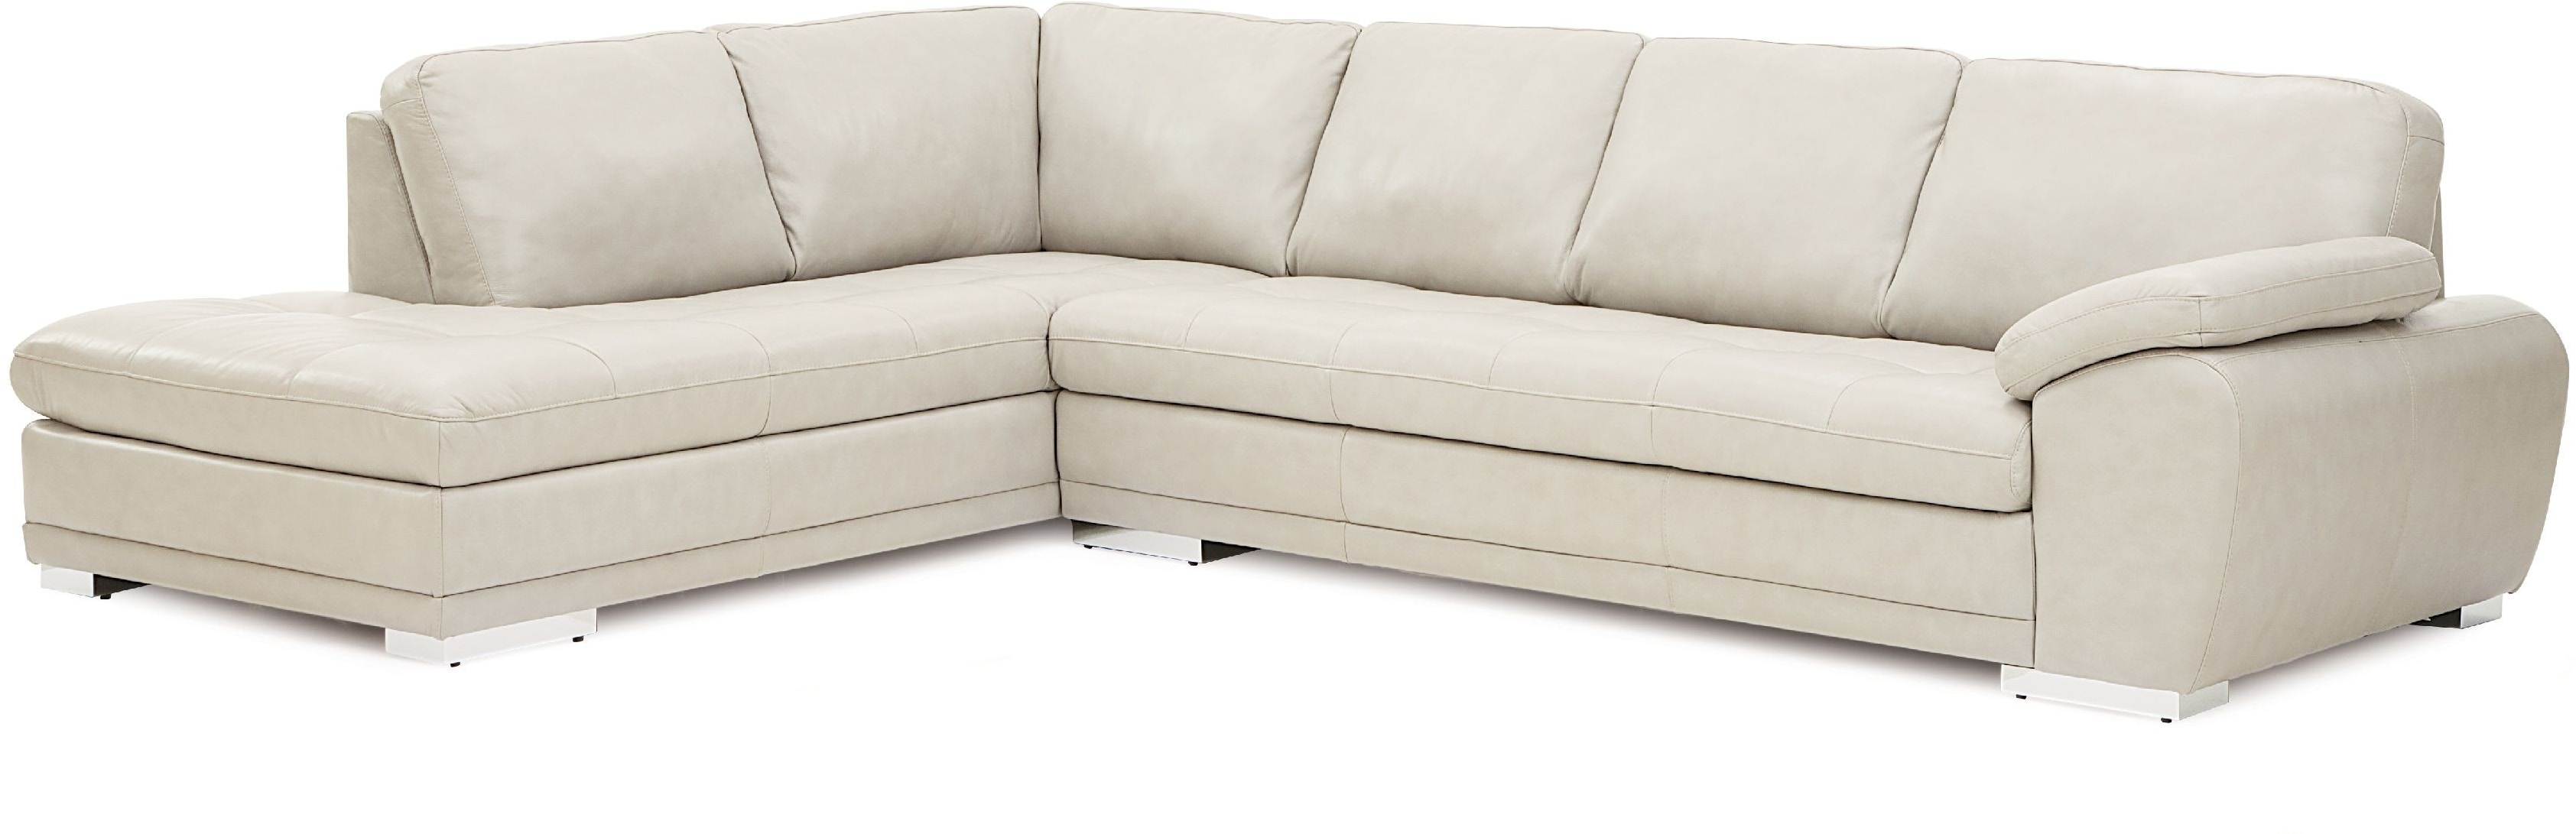 Palliser Furniture Living Room Miami Sectional 77319